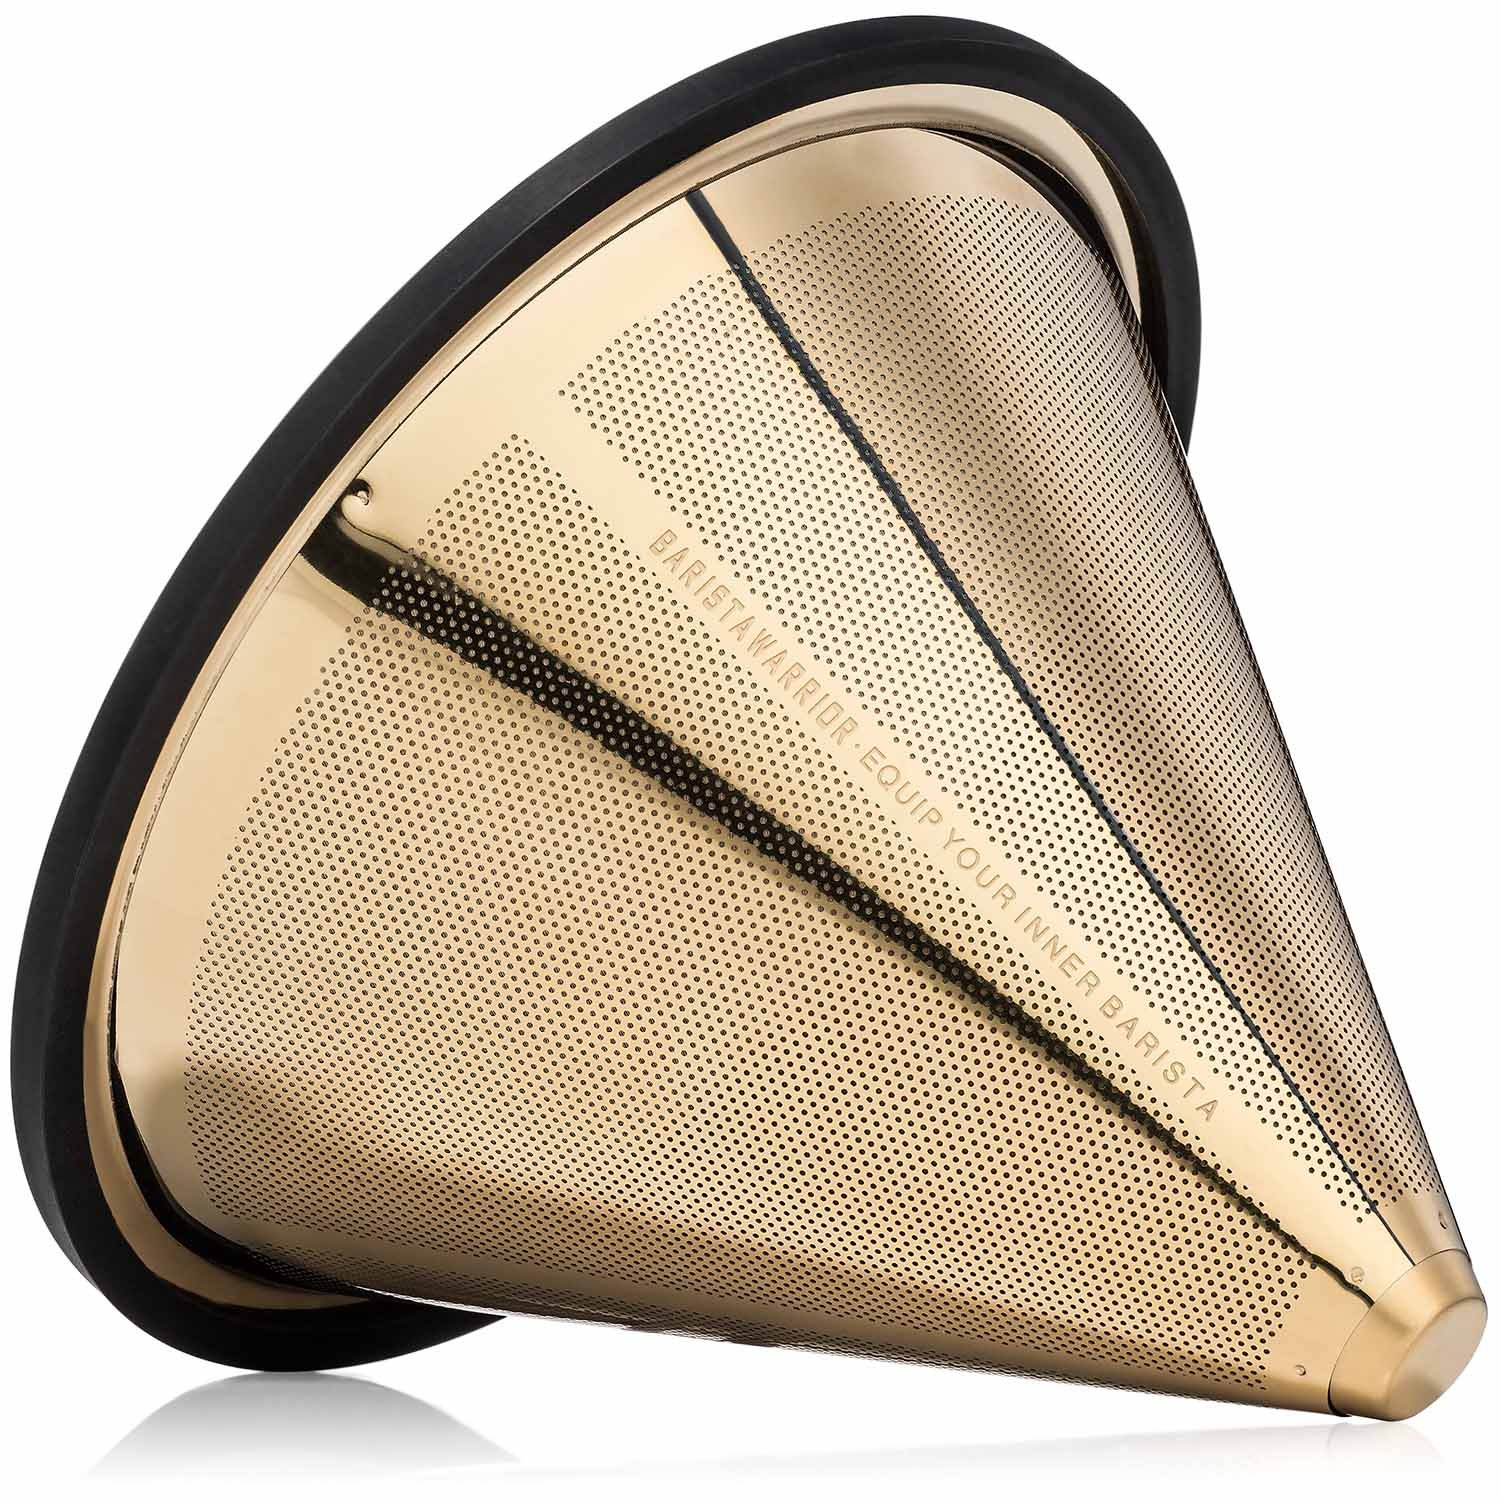 TITANIUM COATED GOLD Pour Over Coffee Filter - Reusable Stainless Steel Drip Cone for Chemex, Hario V60, Carafes and Other Coffee Makers by Barista Warrior (Image #1)